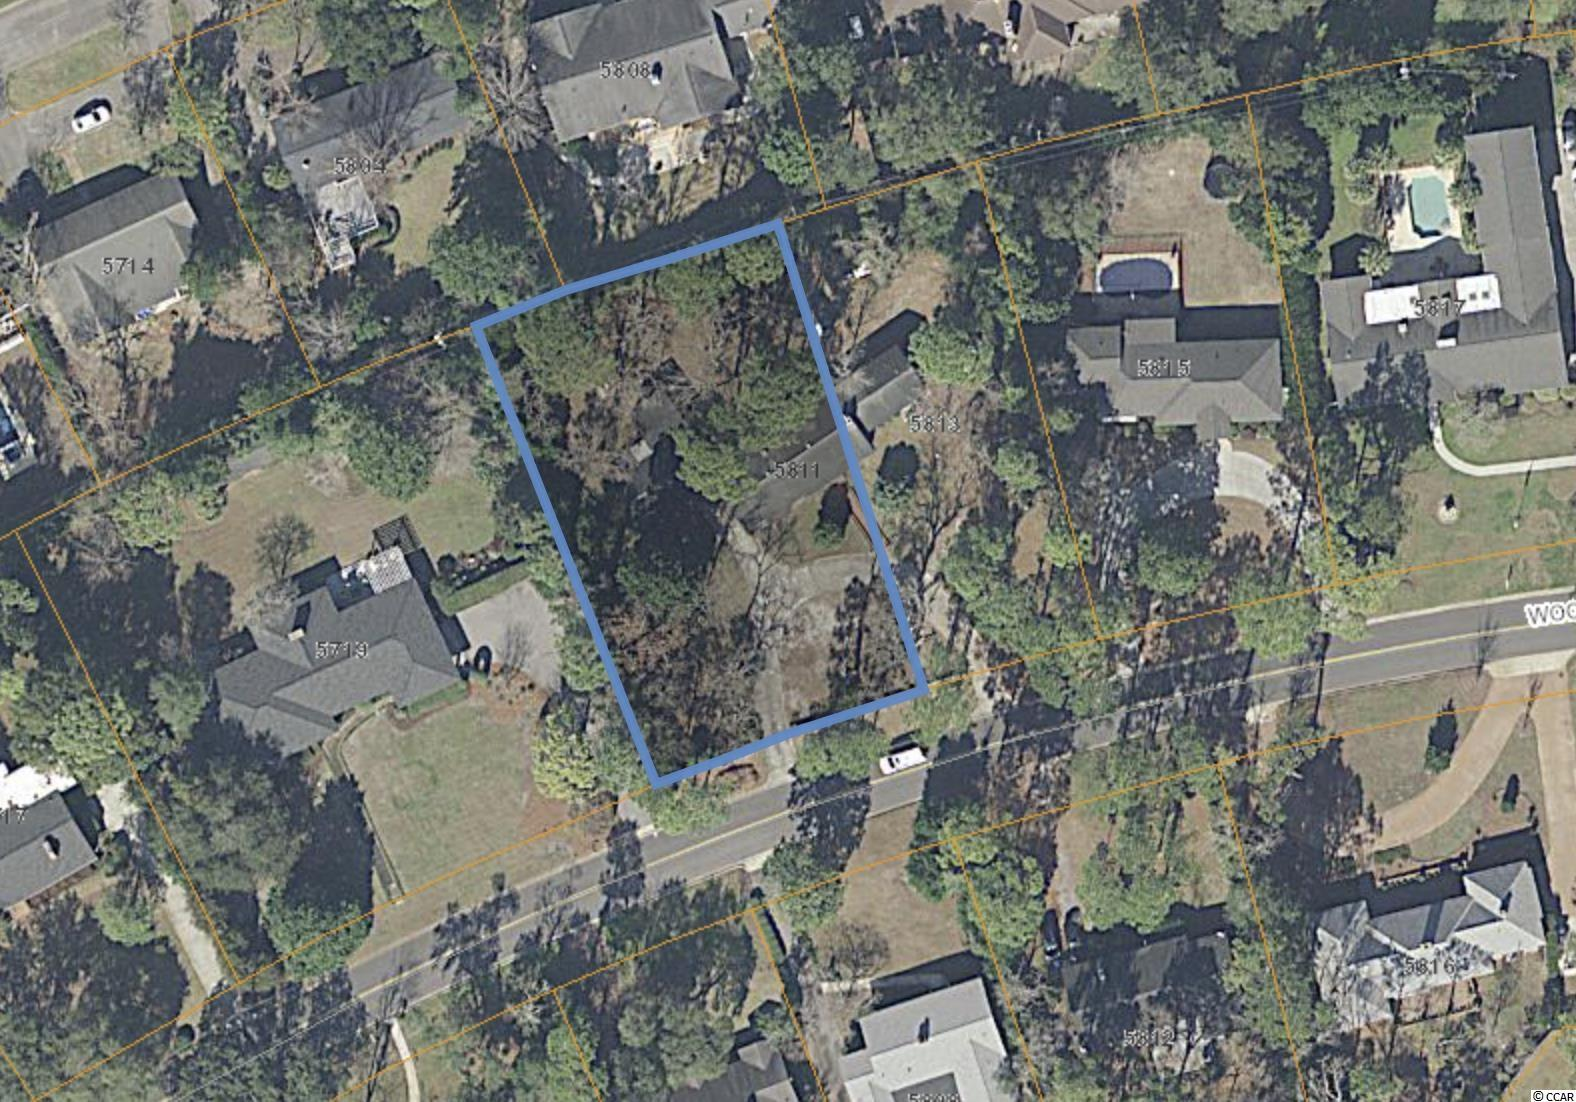 """This is your chance to build your dream home at Pine Lakes, the first golf course designed in Myrtle Beach known as """"The Granddaddy"""". This amazing 0.56 acre lot in Pine Lakes is located only half a mile from the ocean and NO HOA! Restaurants, shops, grocery stores, everything within 5 min."""